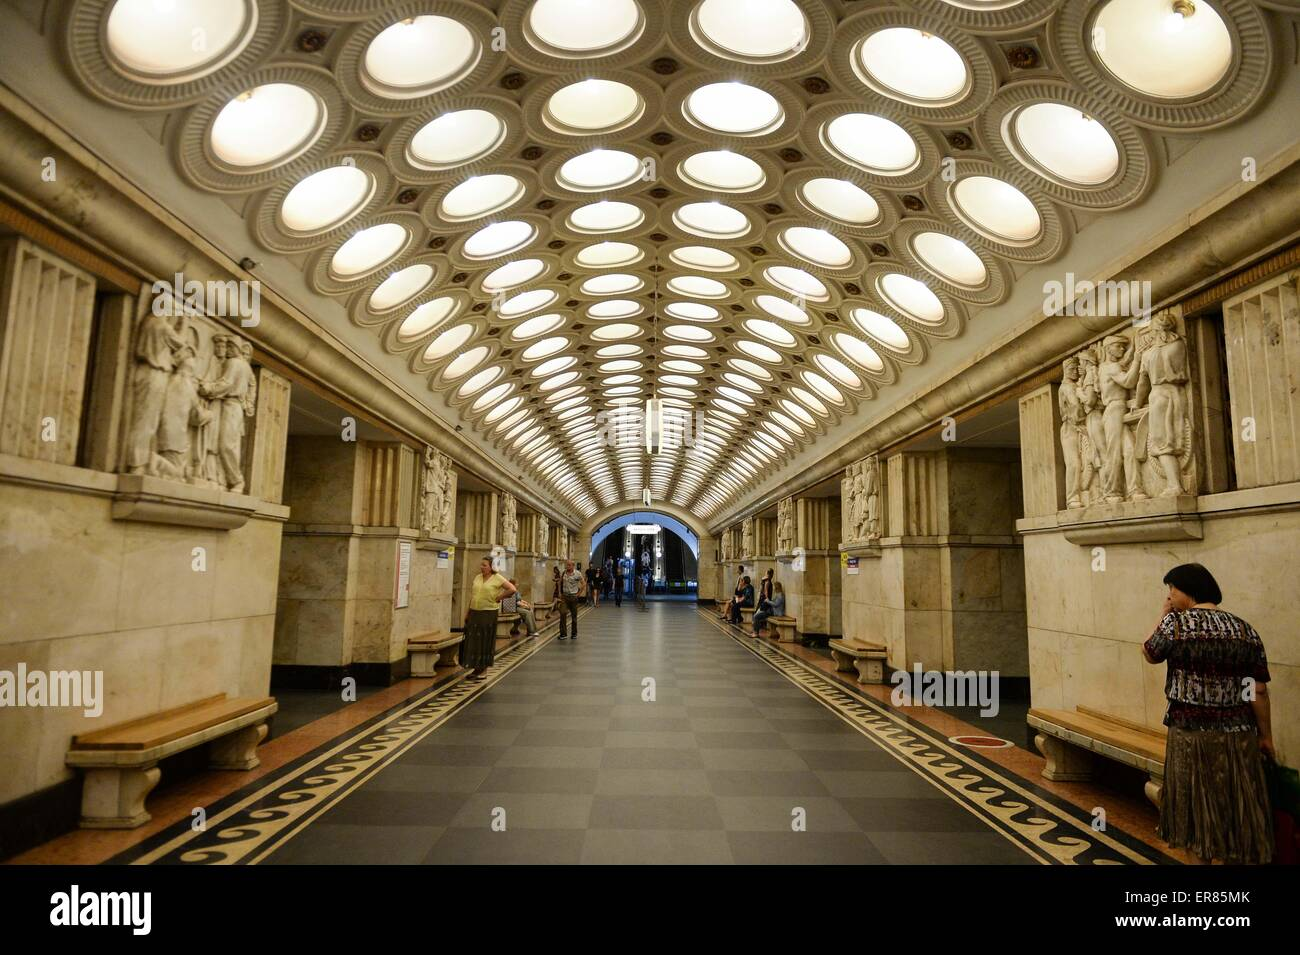 Moscow. 27th May, 2015. The photo taken on May 27, 2015 shows the Elektrozavodskaya subway station in Moscow, Russia. Stock Photo